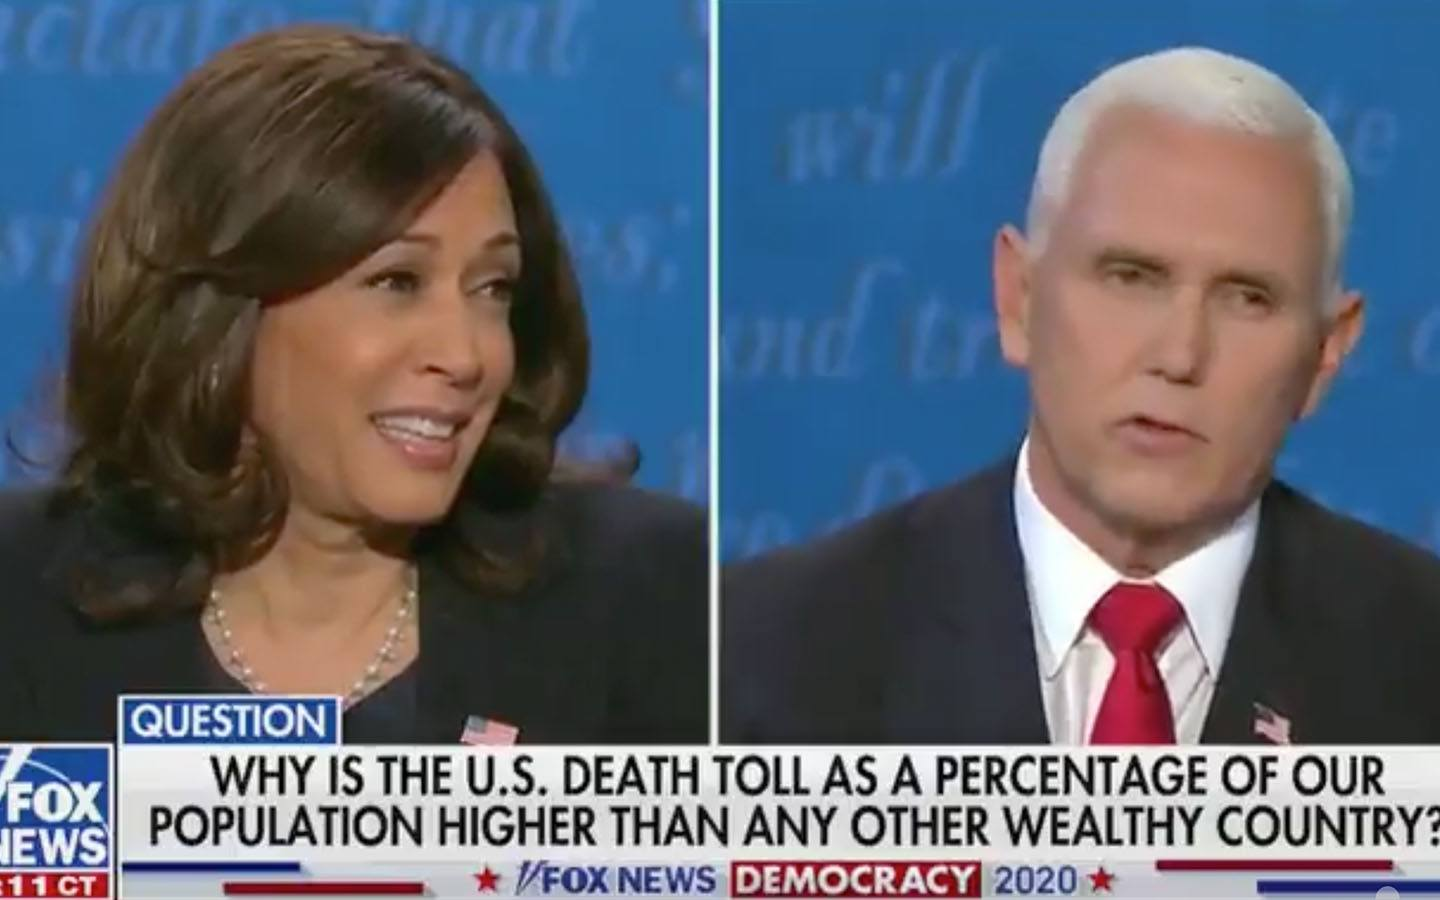 [WATCH] This One Powerful Line From Pence is What Won Him the Debate Against Kamala Harris